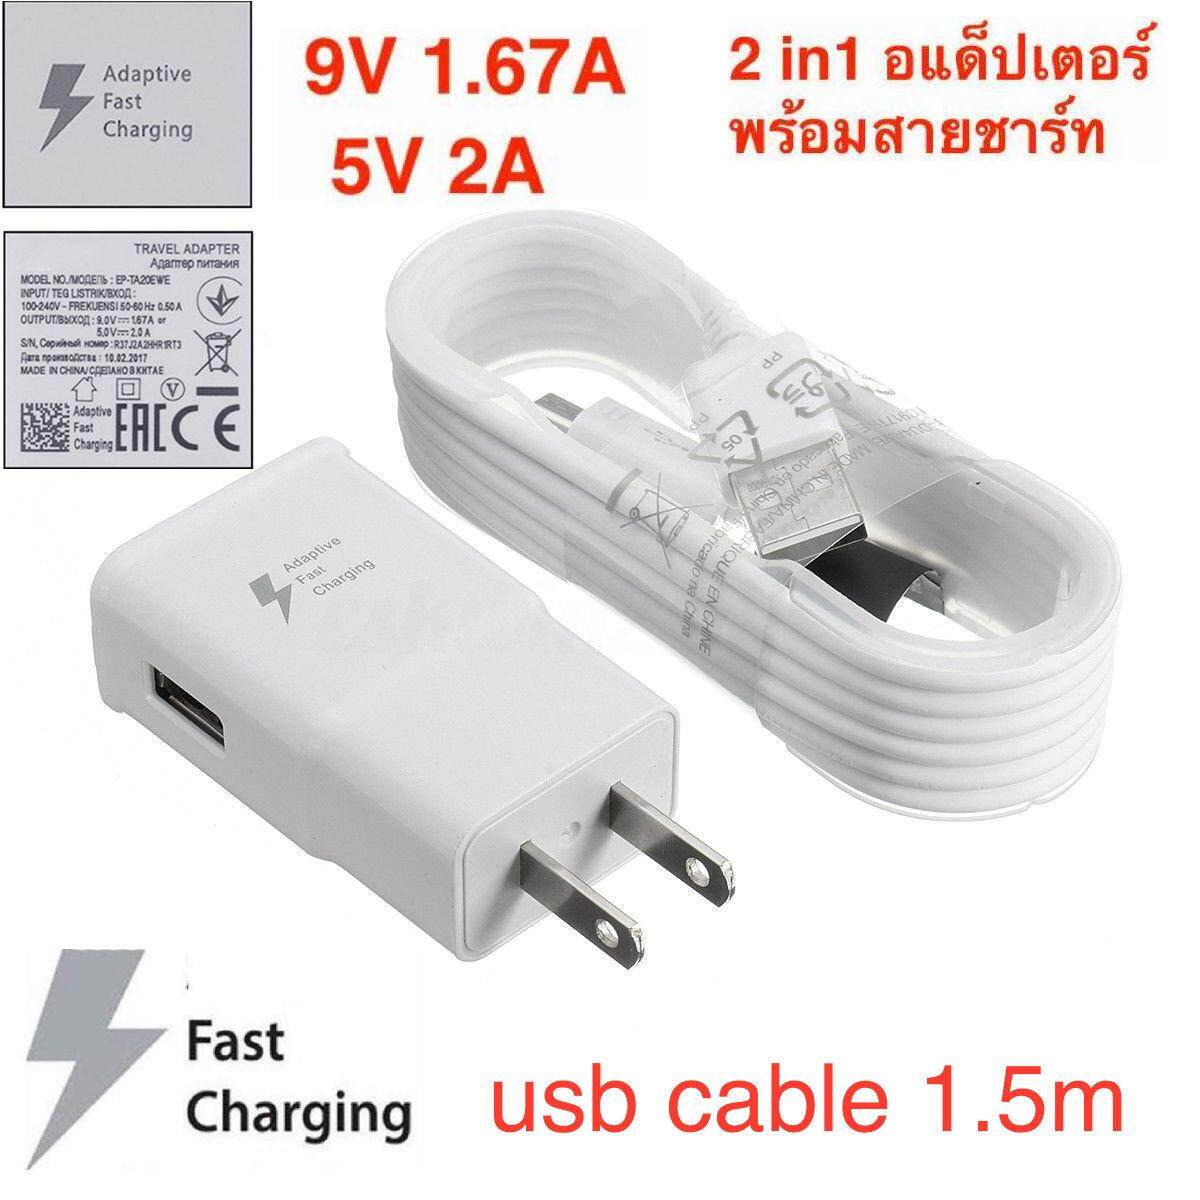 Sell 5v Usb Cable Cheapest Best Quality Th Store Power Adapter Plug Wire Type Dc Connector 40mm17mm Thb 199